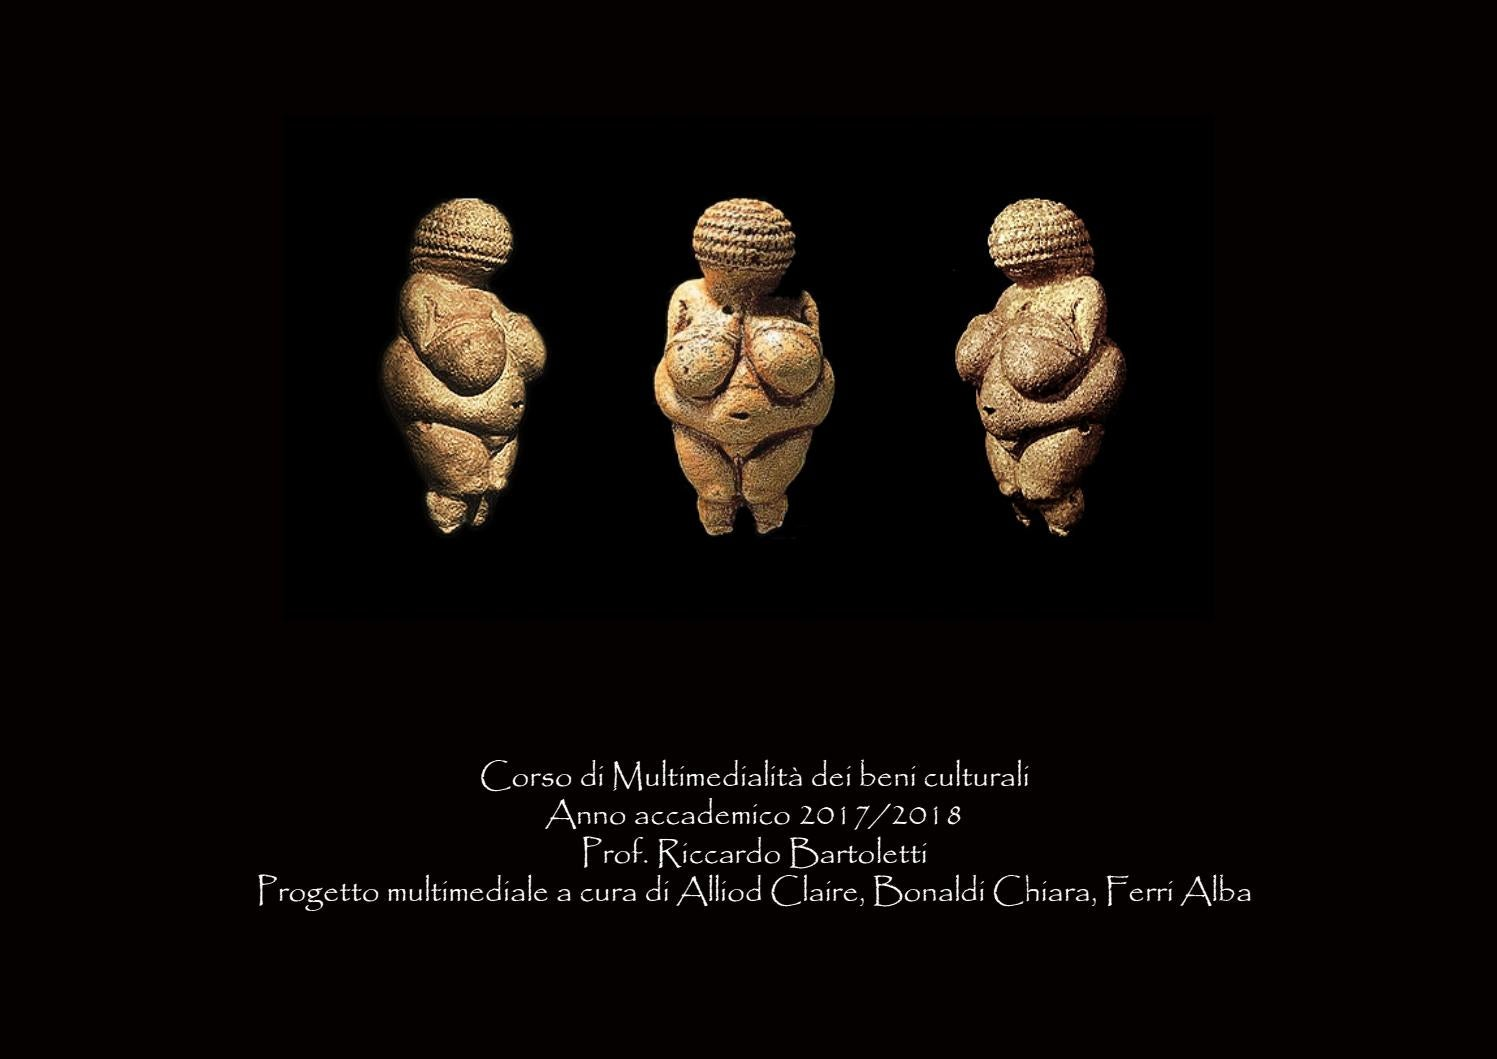 Venere di Willendorf by alba ferri - issuu